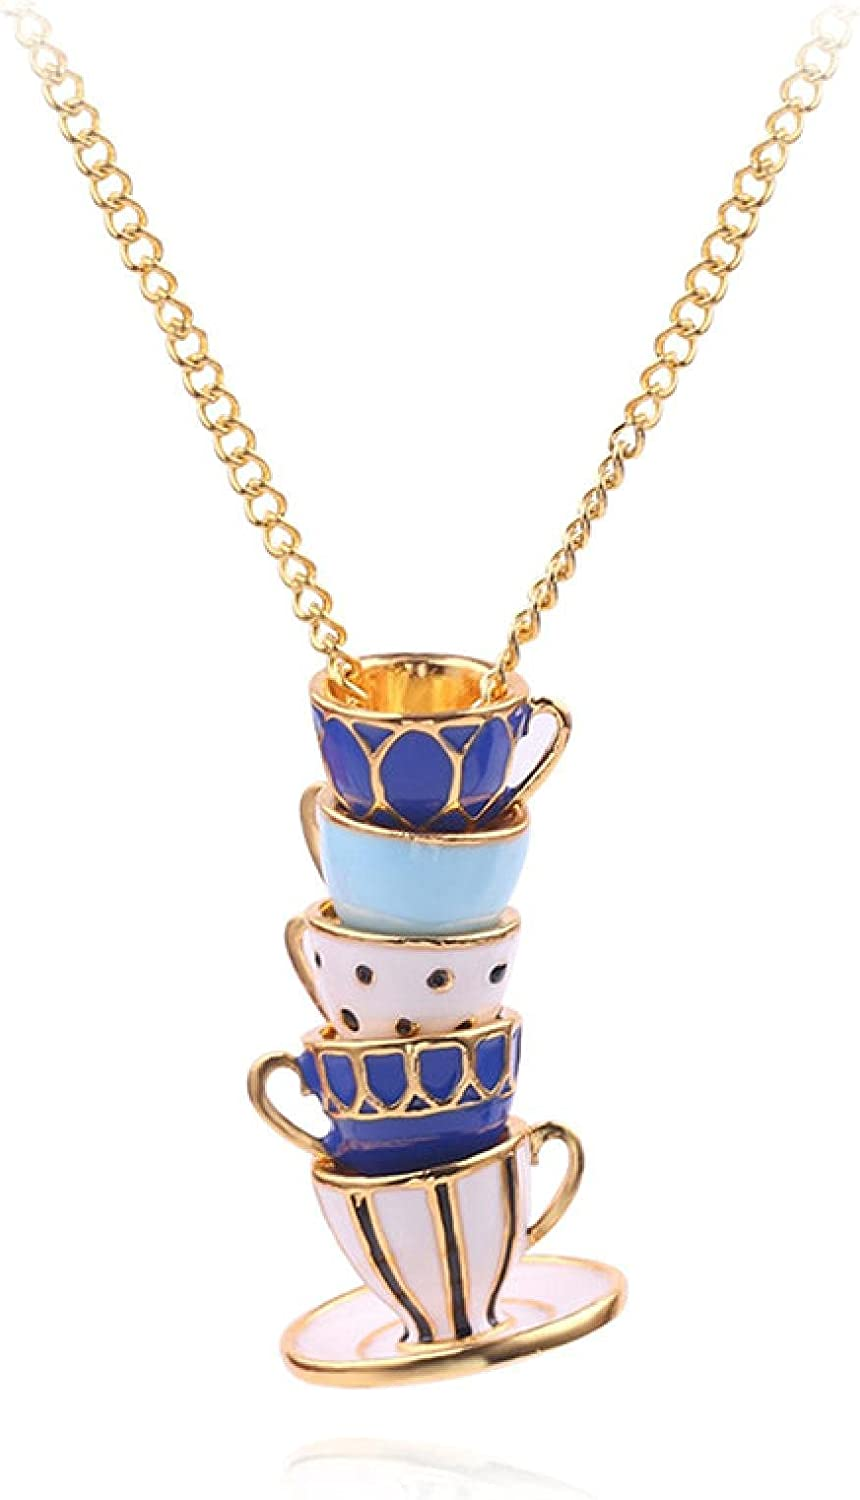 Naswi Tea Cups Stack Pendant Necklace Hand Made Sweater Chain Creative Stereoscopic Enamel Jewelry Long Necklace for Women Collar